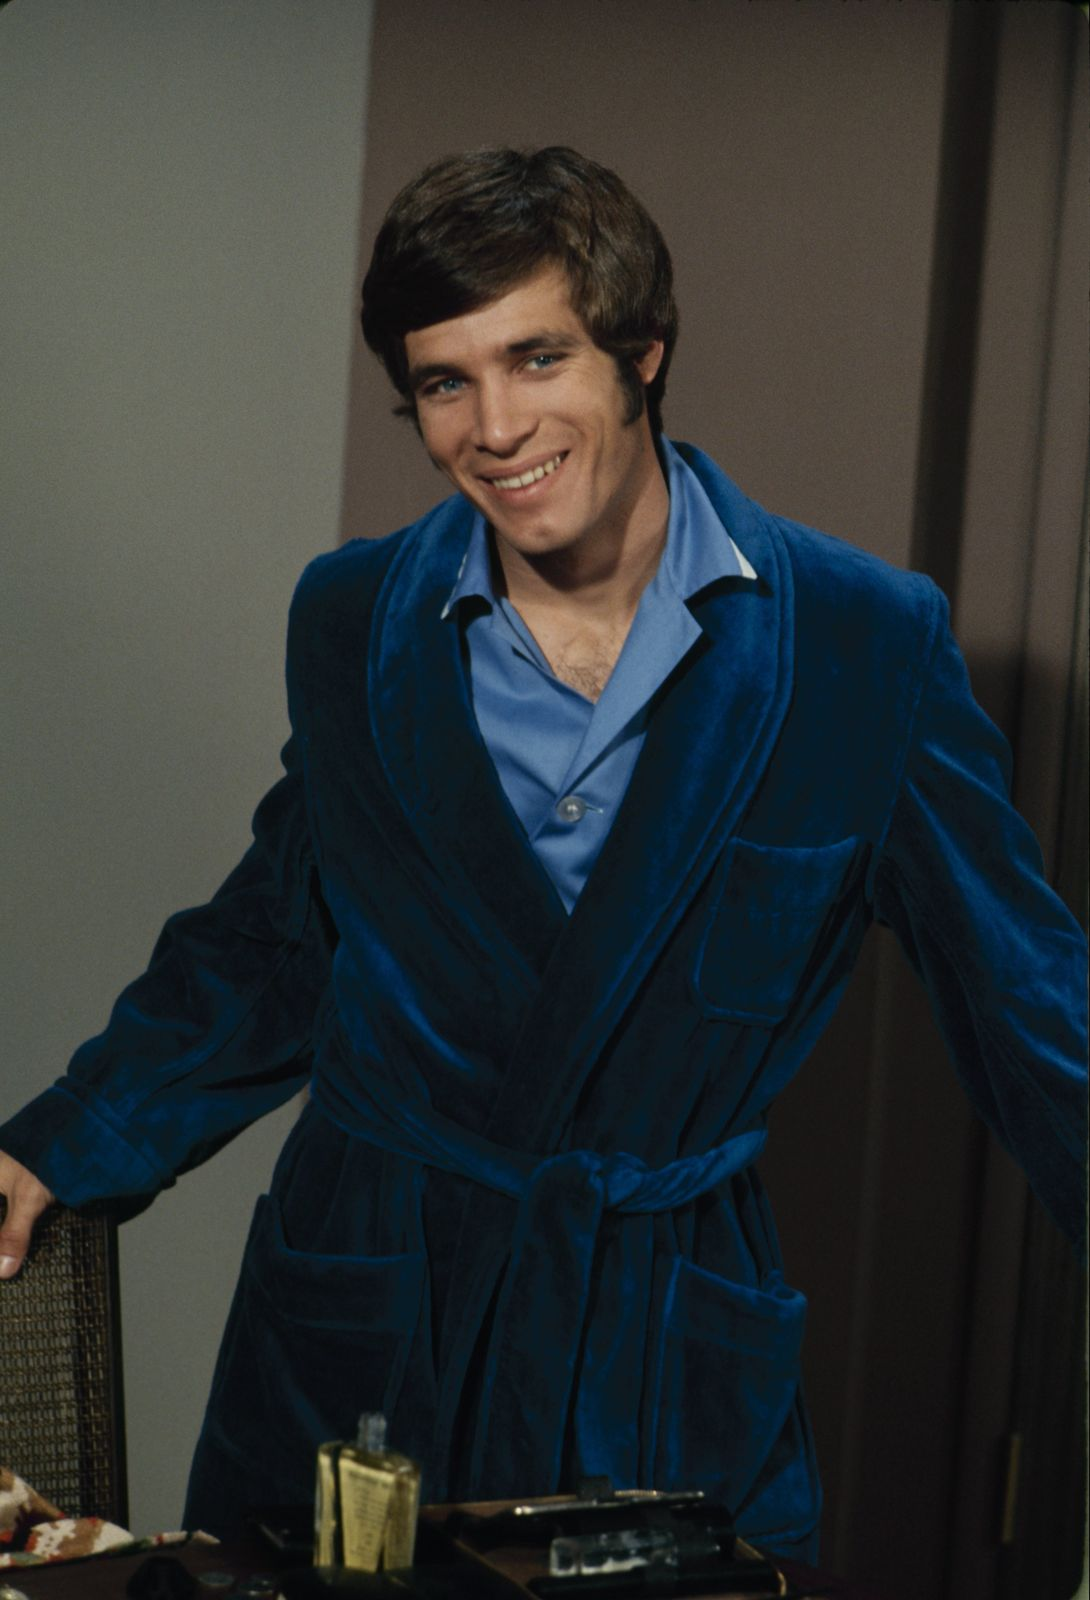 """A portrait of Don Grady on set of """"LOVE, AMERICAN STYLE"""" on 13 February, 1970 